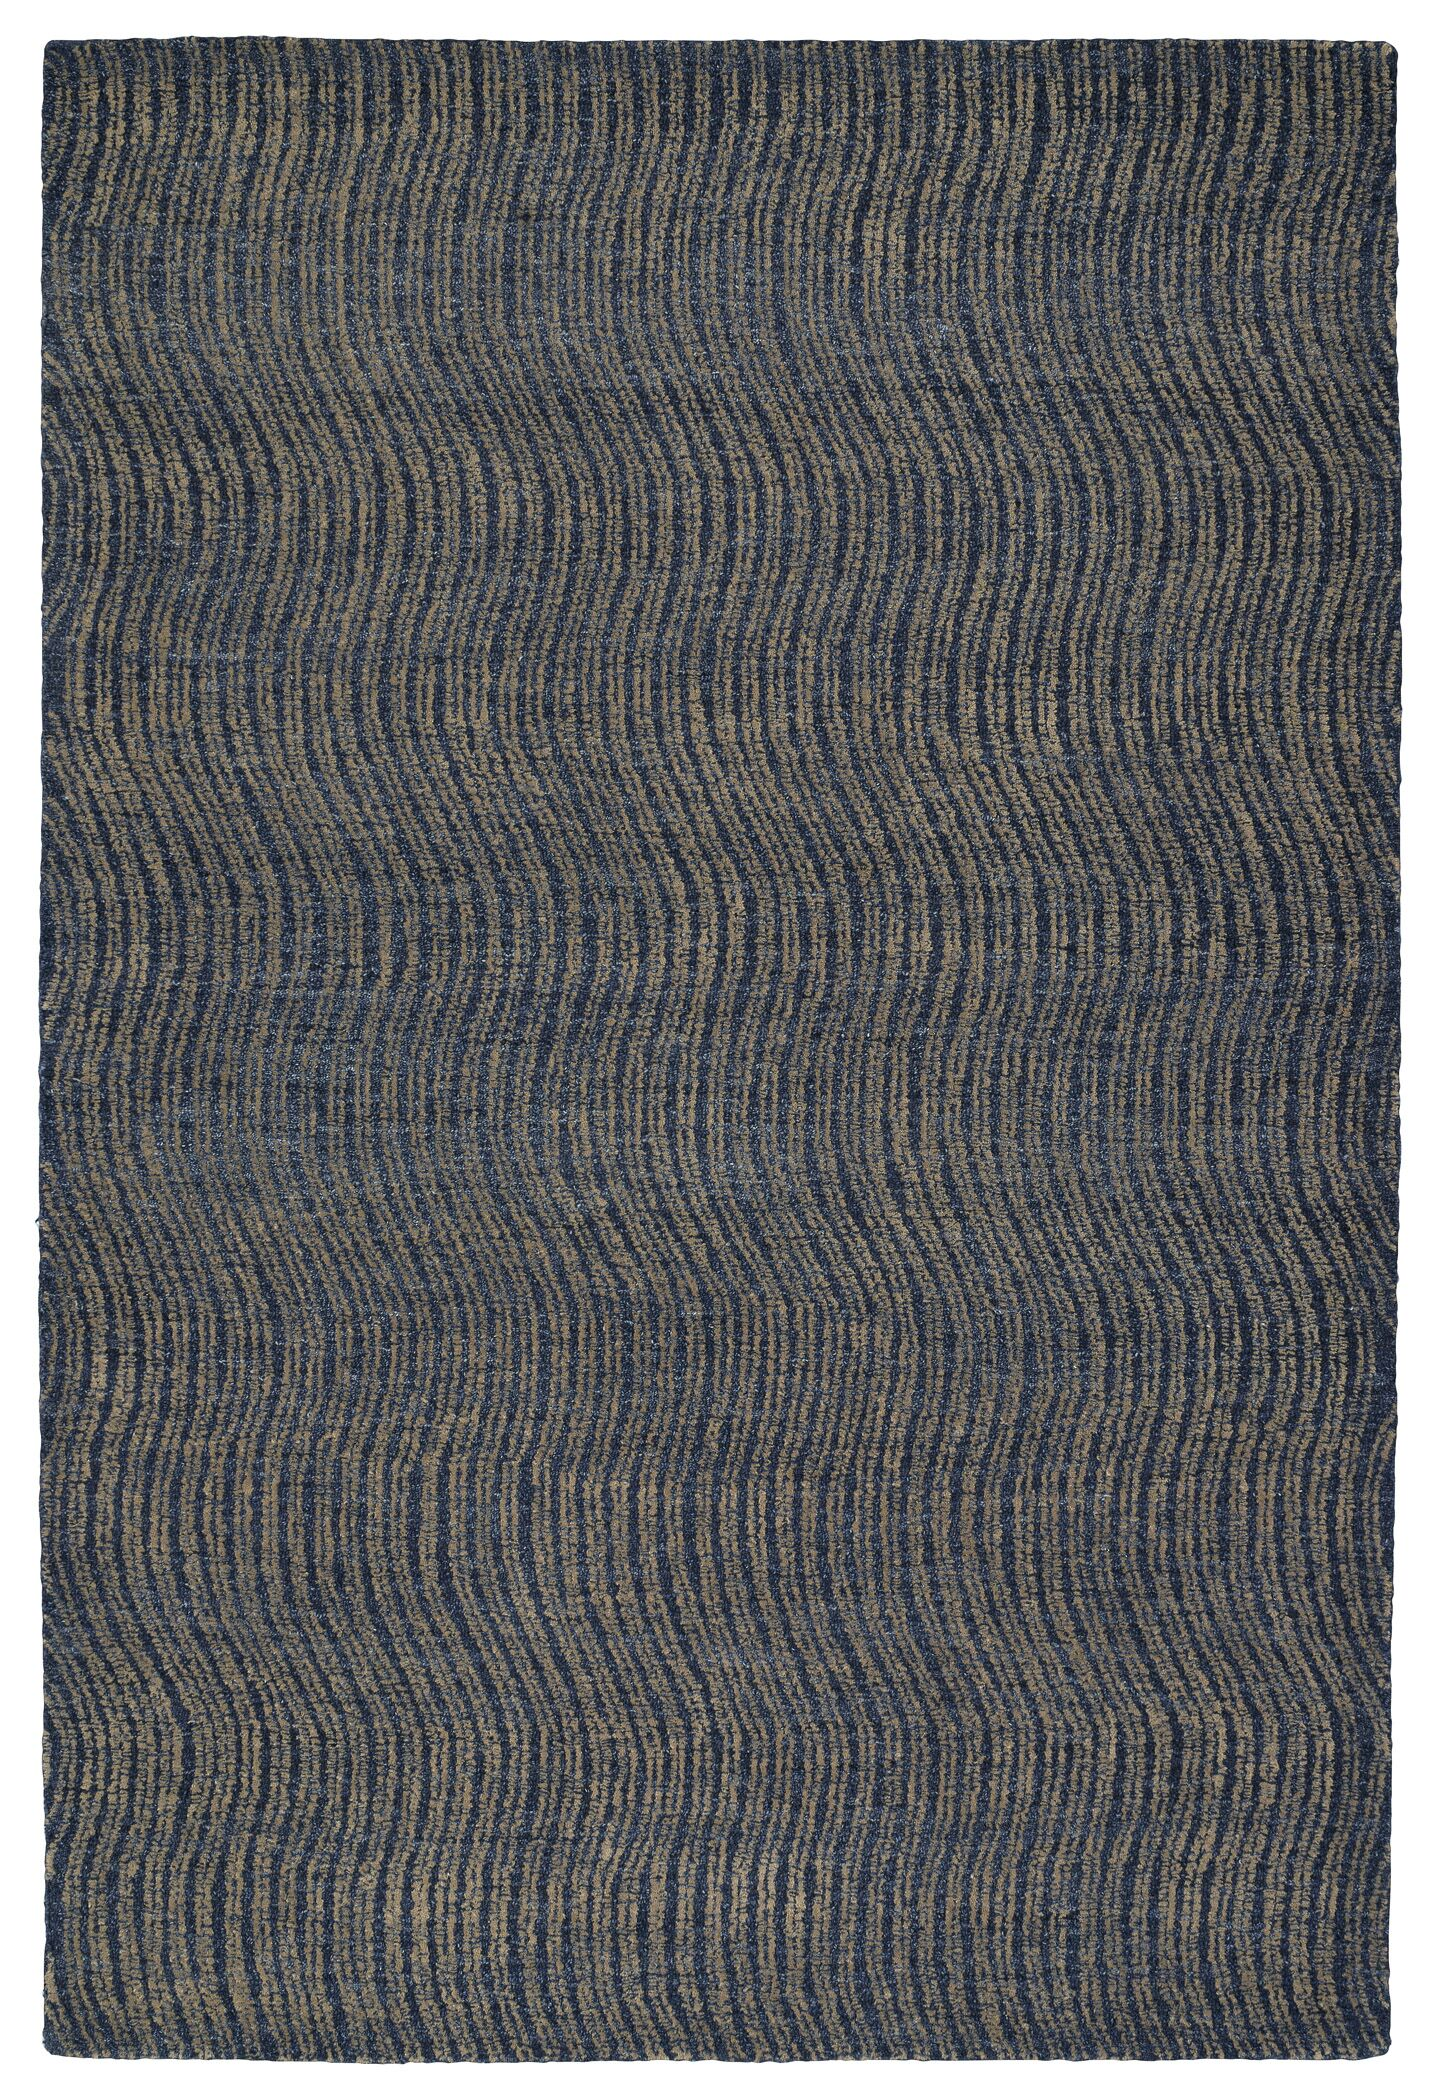 Caneadea Hand-Tufted Blue Area Rug Rug Size: Rectangle 9' x 12'